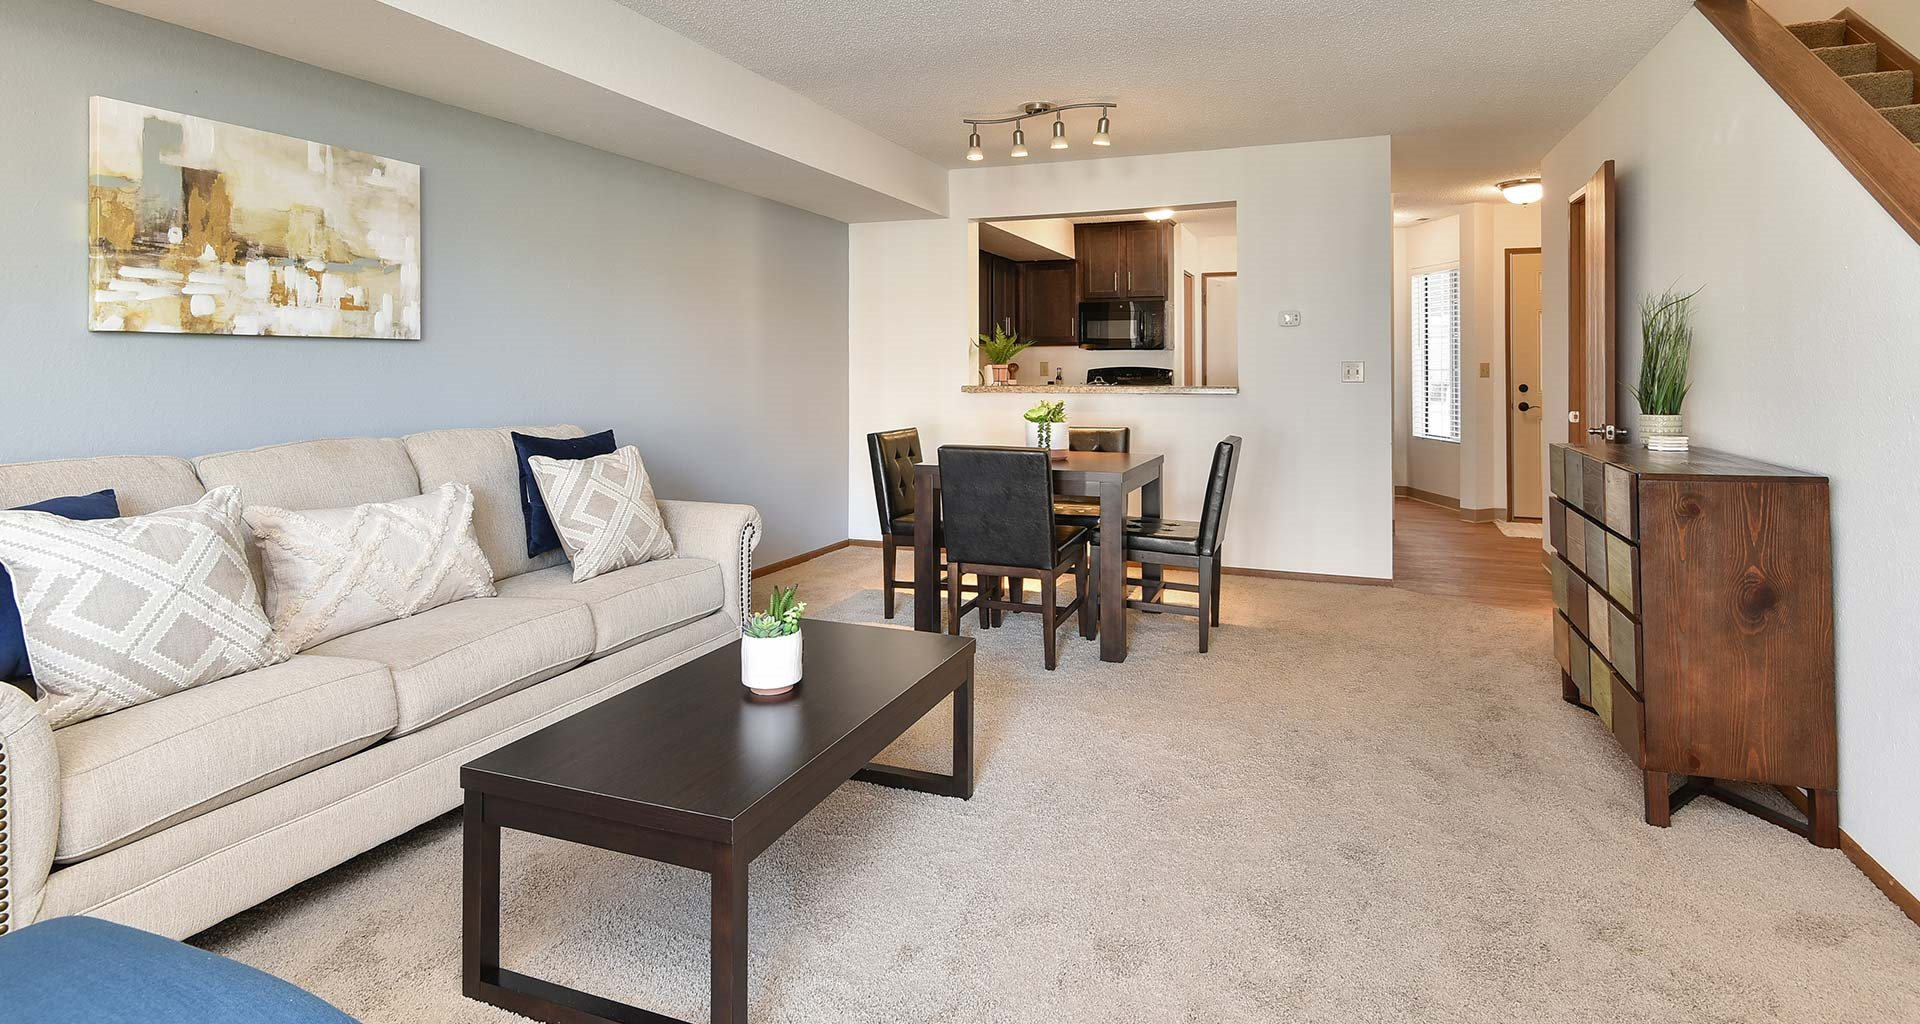 B Lake Hills Townhomes | Apartments in Plymouth, MN Boutwells Landing Townhomes Designs on